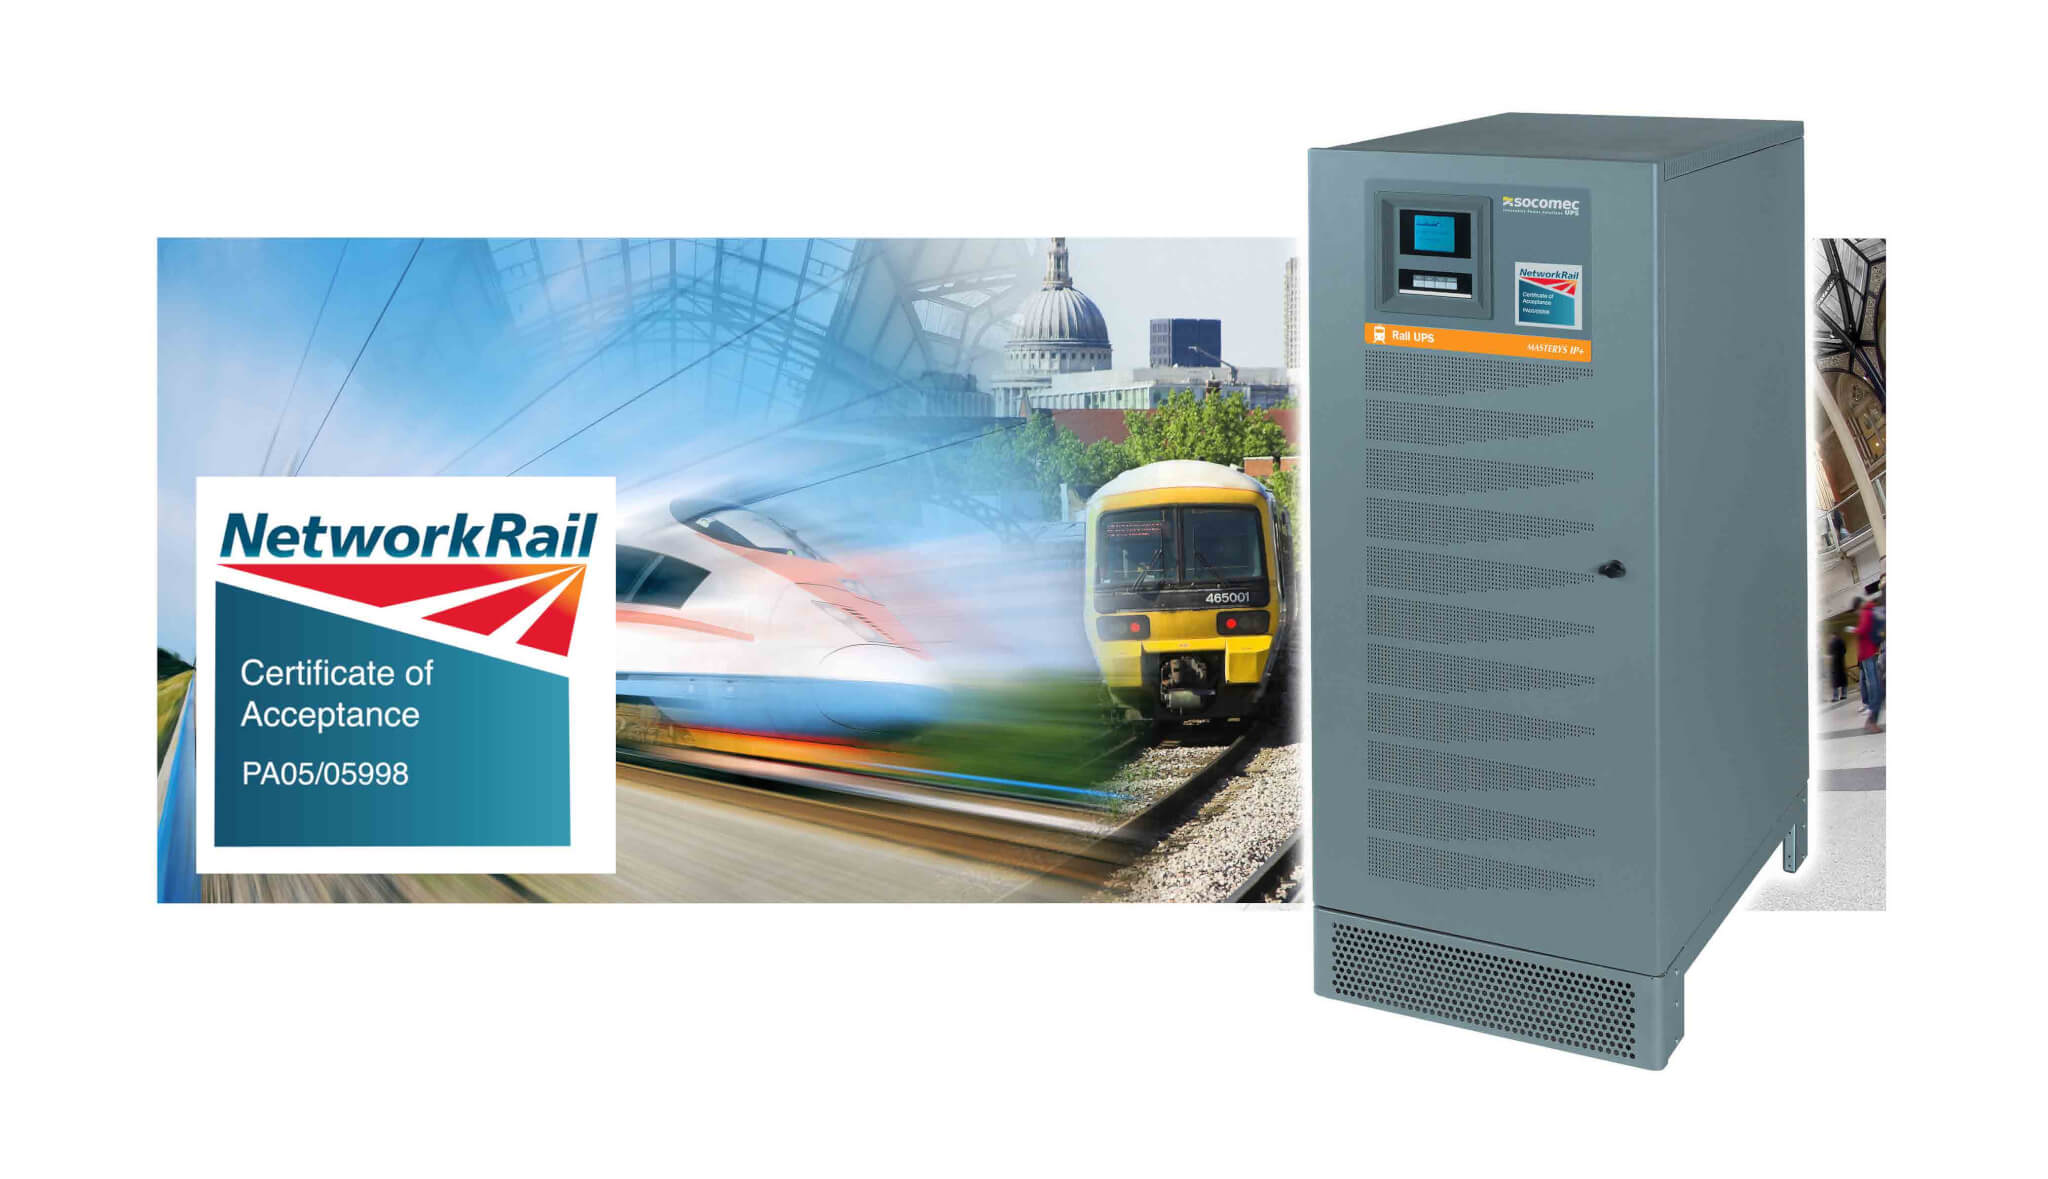 PADS Approved Supplier for Network Rail Product